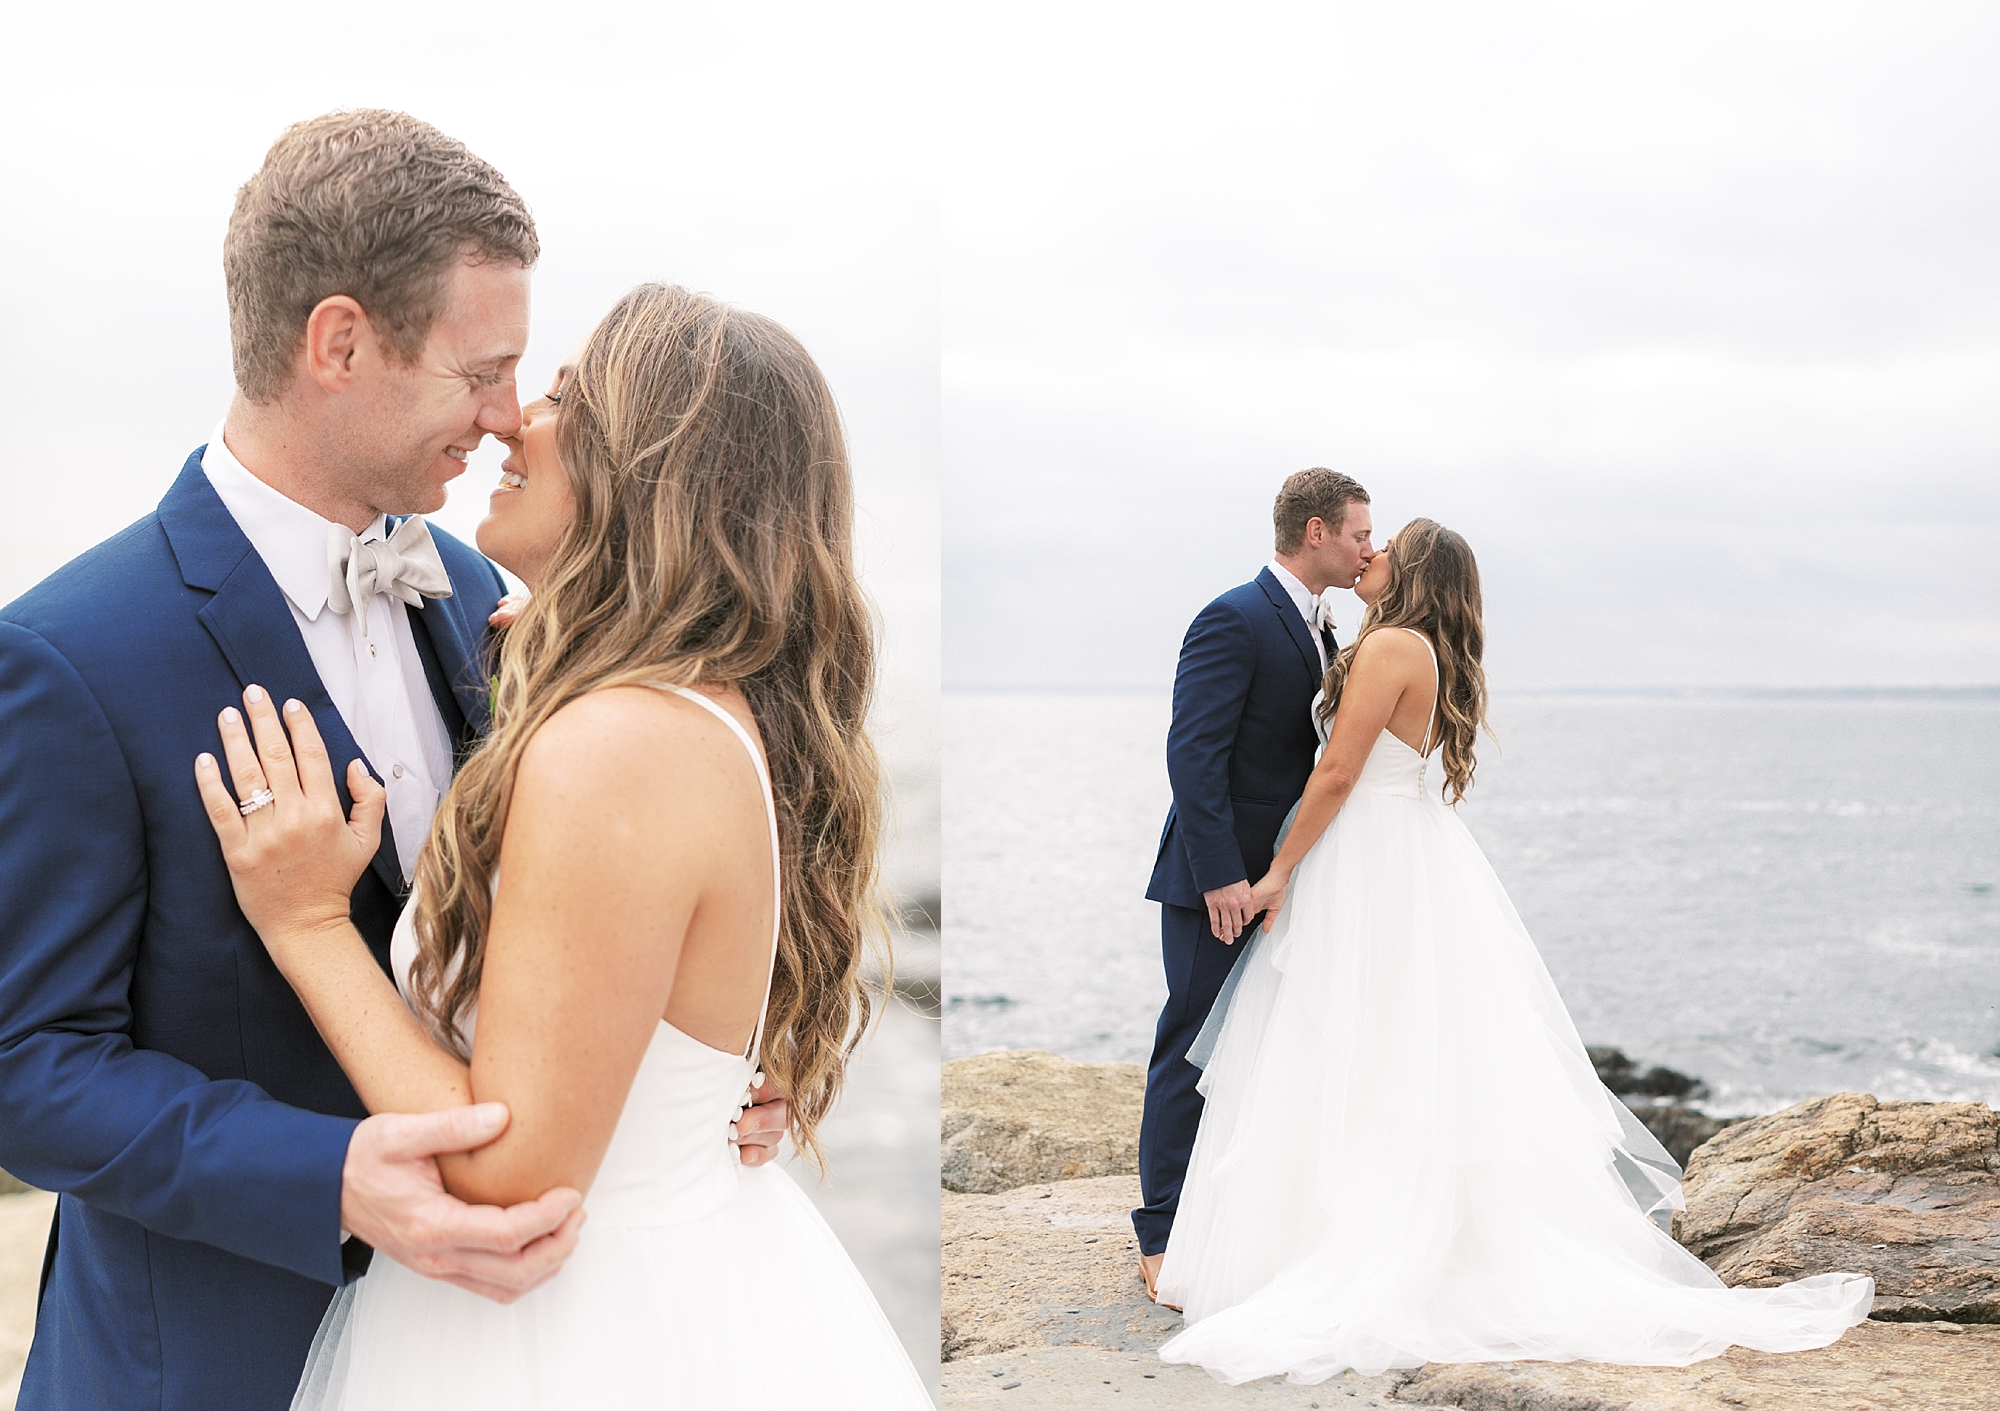 Coastal and Authentic Film Wedding Photography in Newport Rhode Island by Magdalena Studios 0028